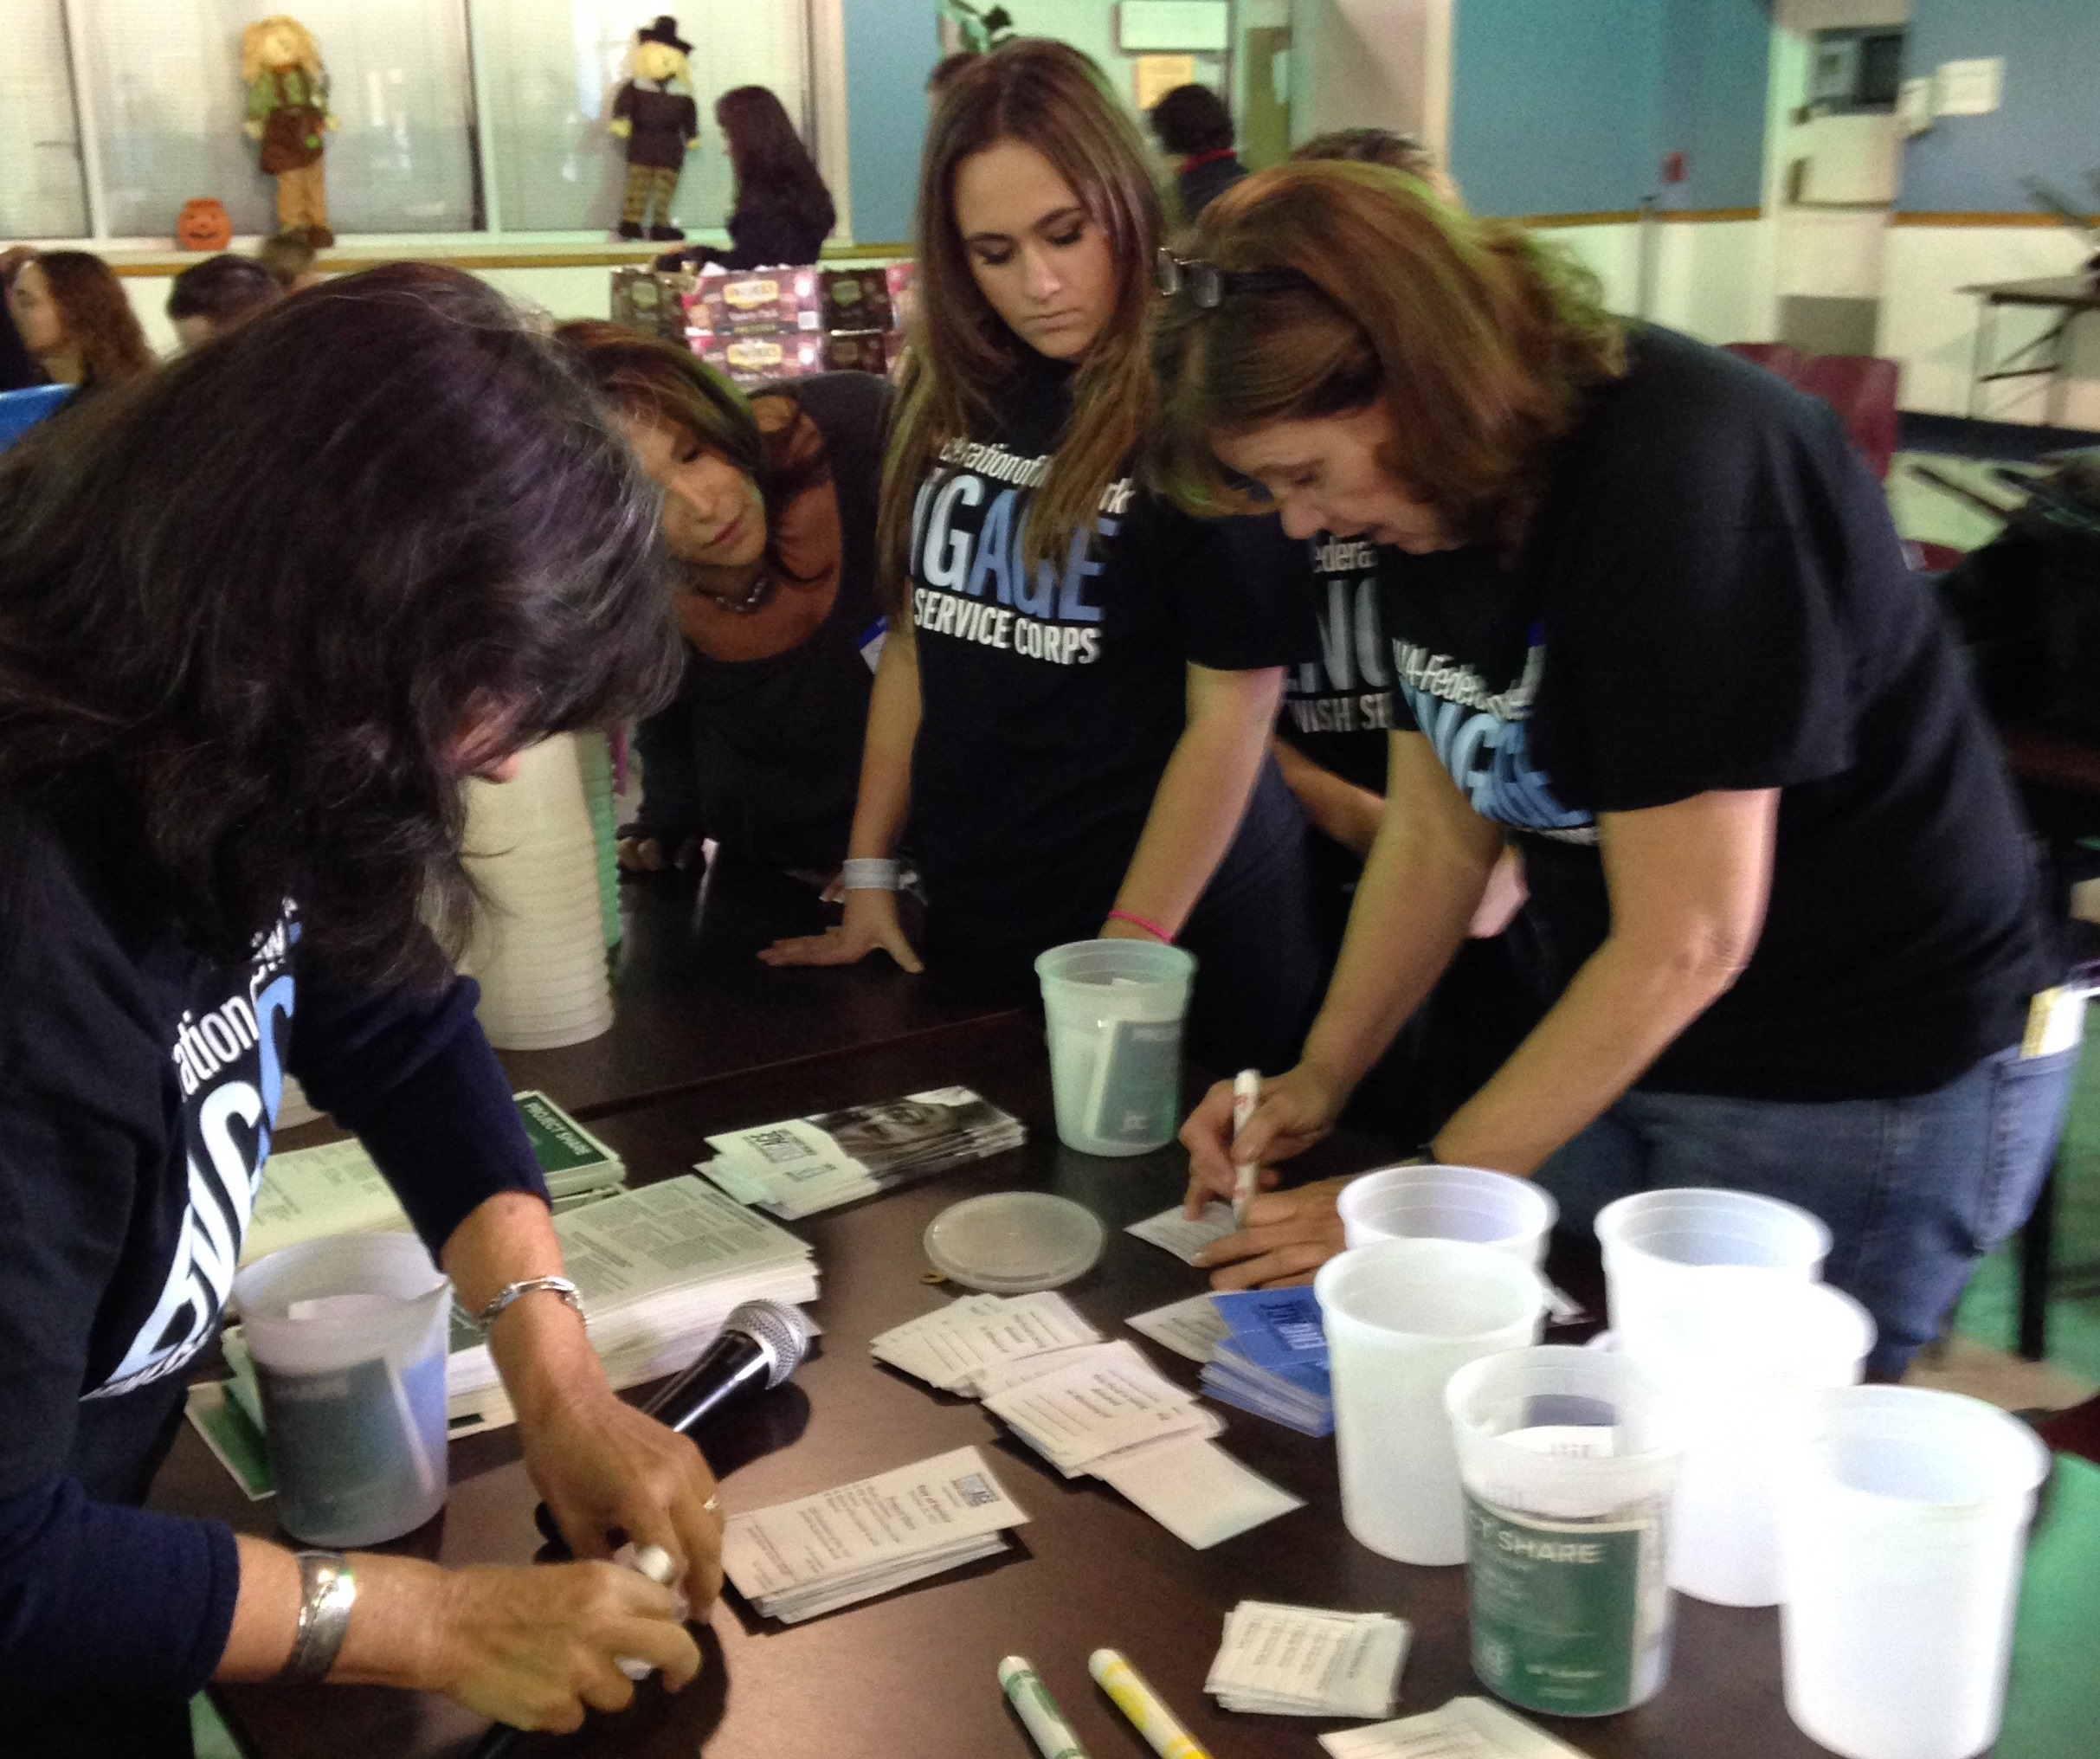 Volunteers from UJA Federation of New York s Engage Jewish Service